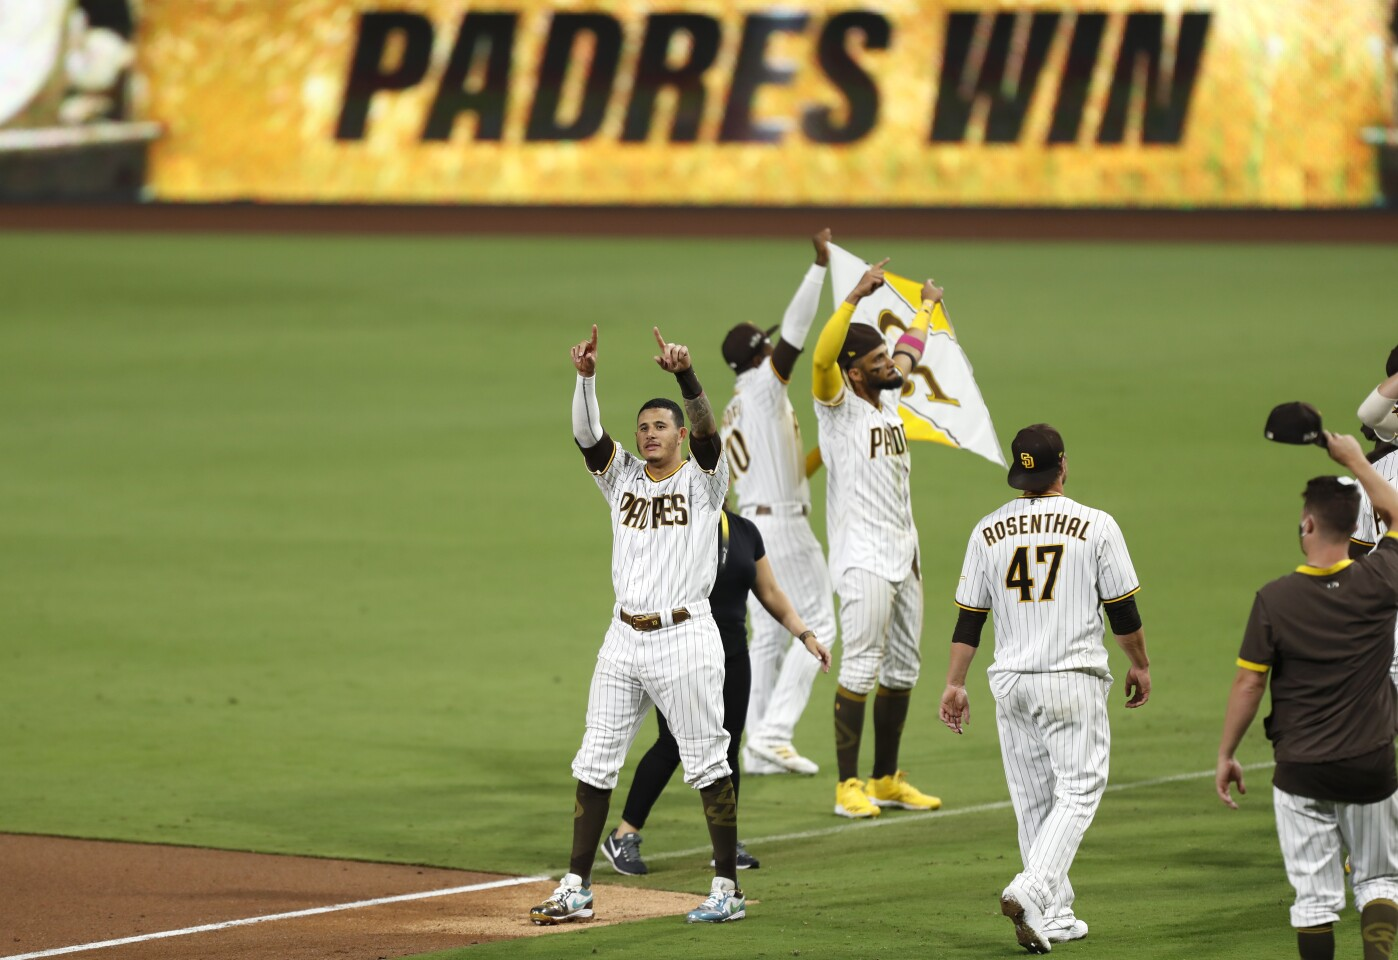 Manny Machado of the San Diego Padres celebrates after beating the St. Louis Cardinals 4-0 to win the Wild Card Series at Petco Park on Friday, Oct. 2, 2020. (K.C. Alfred / The San Diego Union-Tribune)